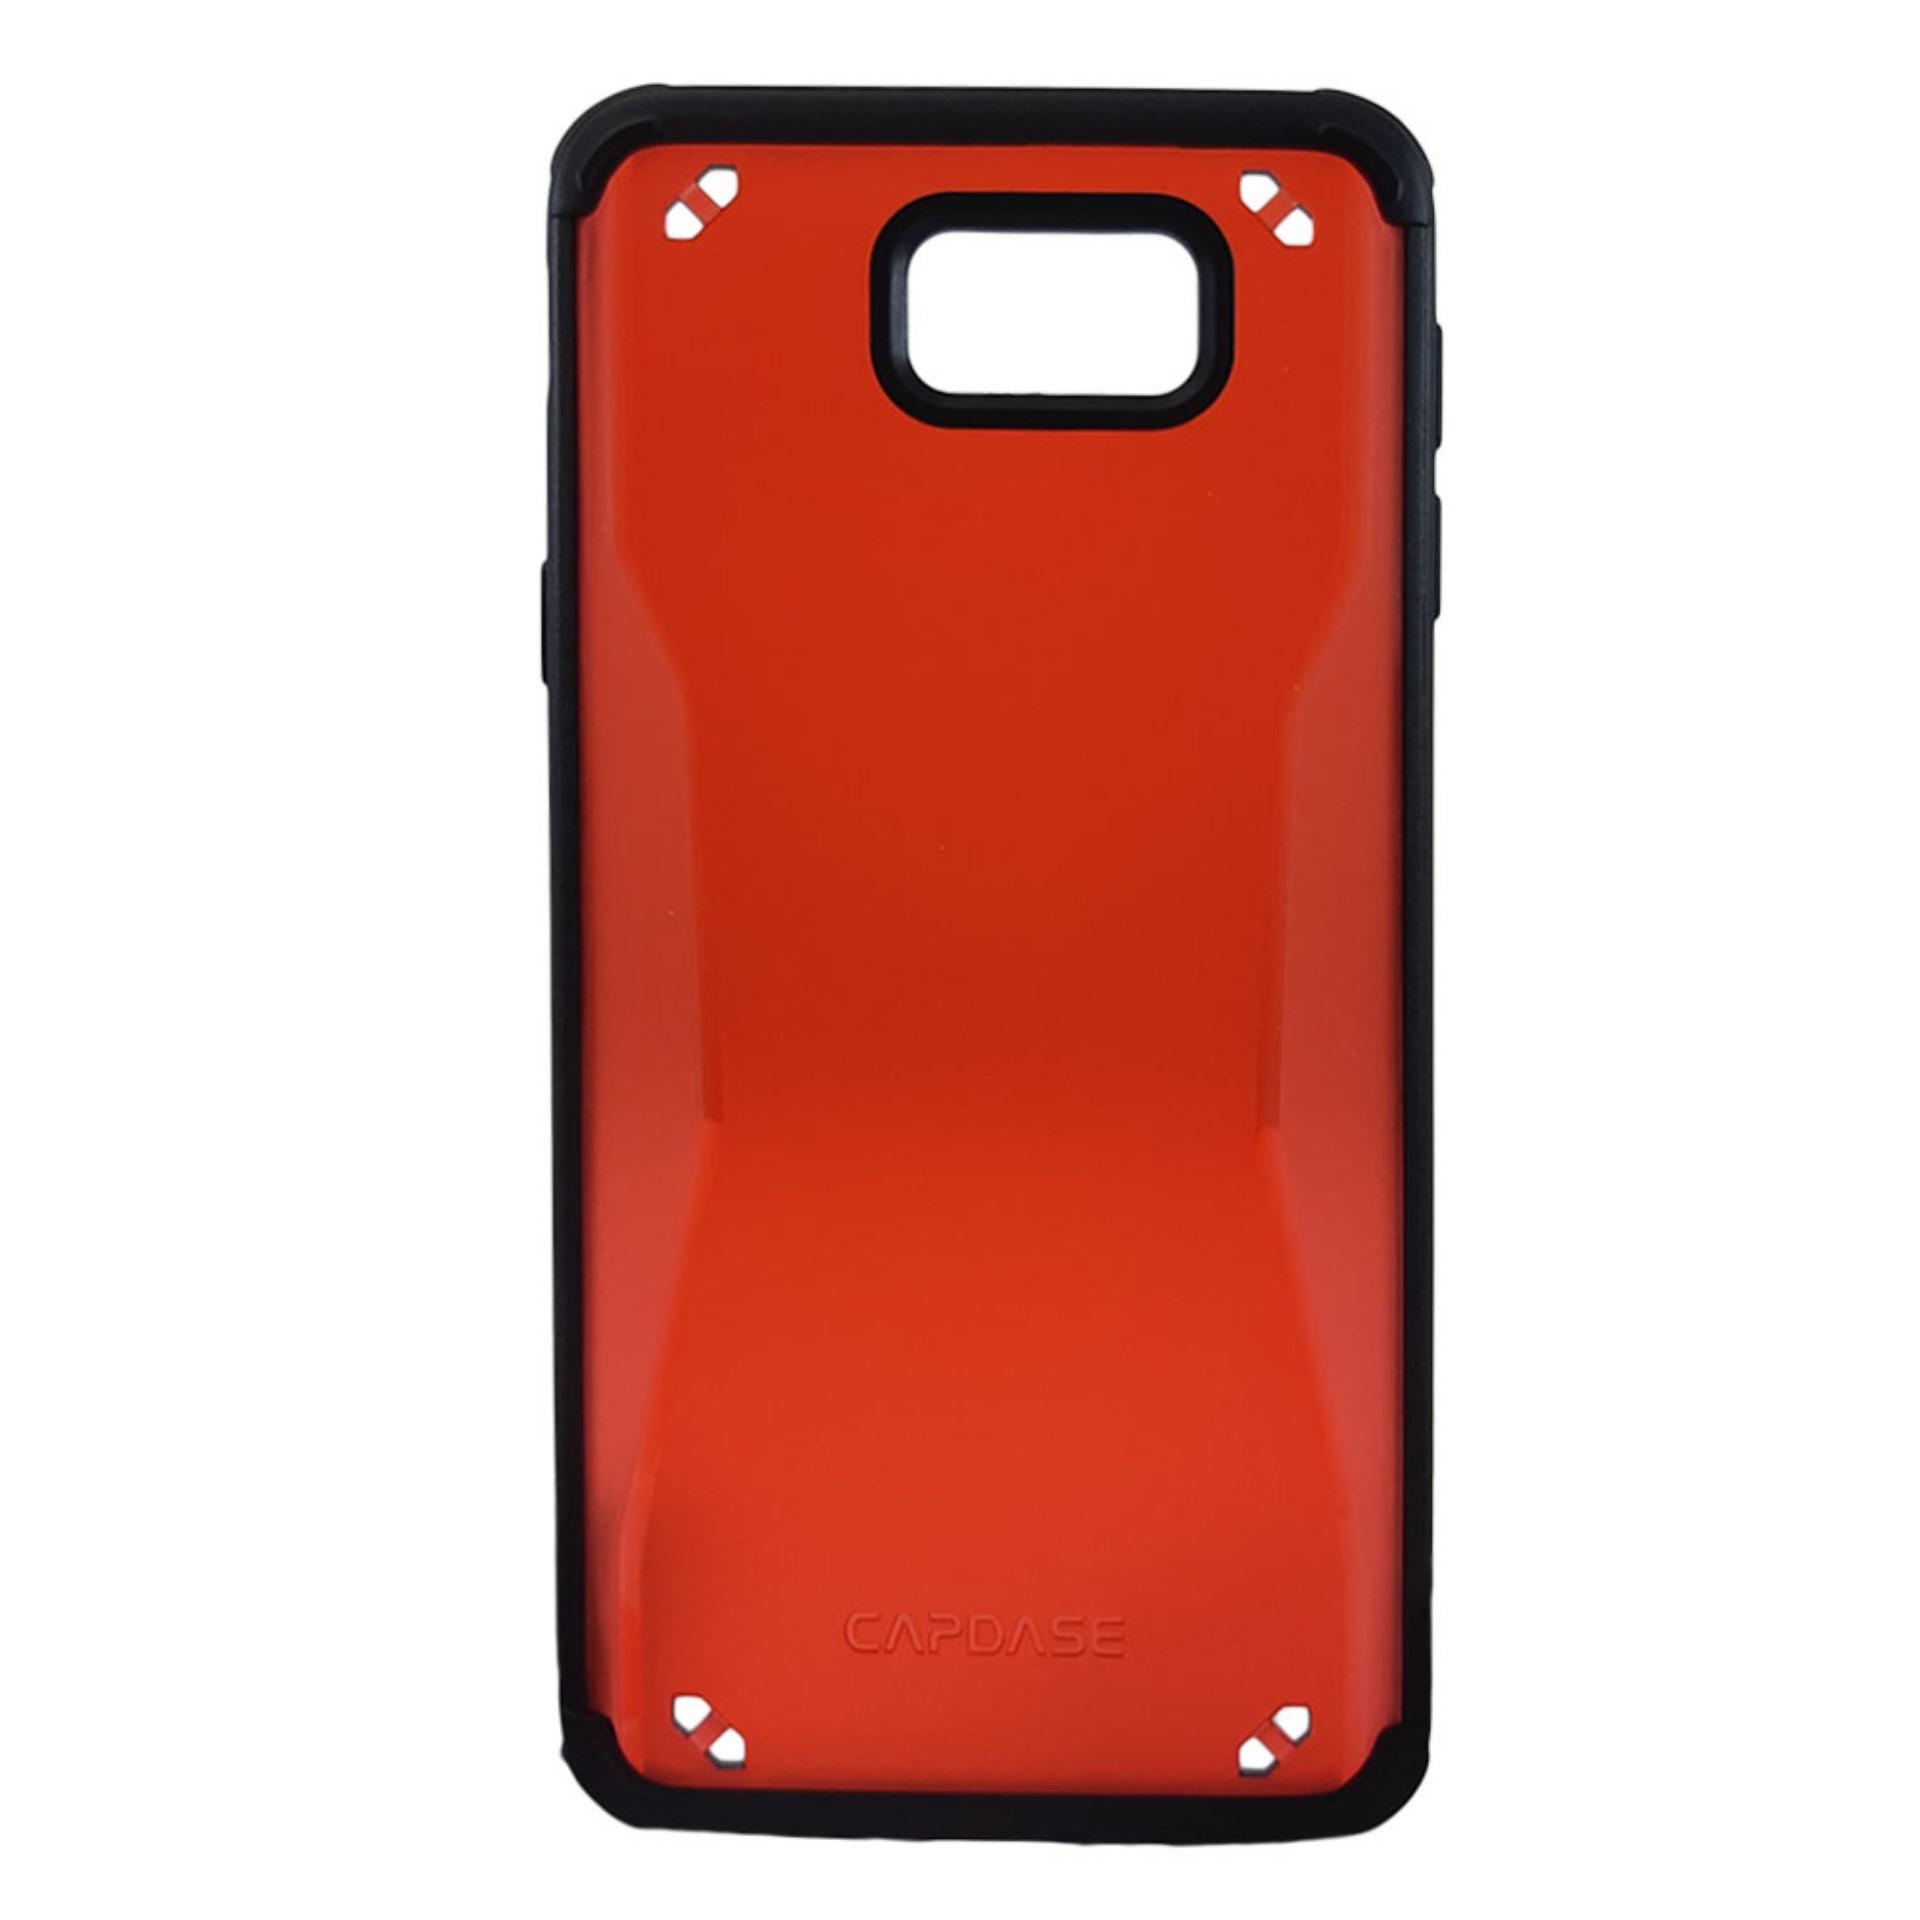 Capdase Fuze II Soft Jacket for Samsung Galaxy J5 Prime (Tinted Red Black)